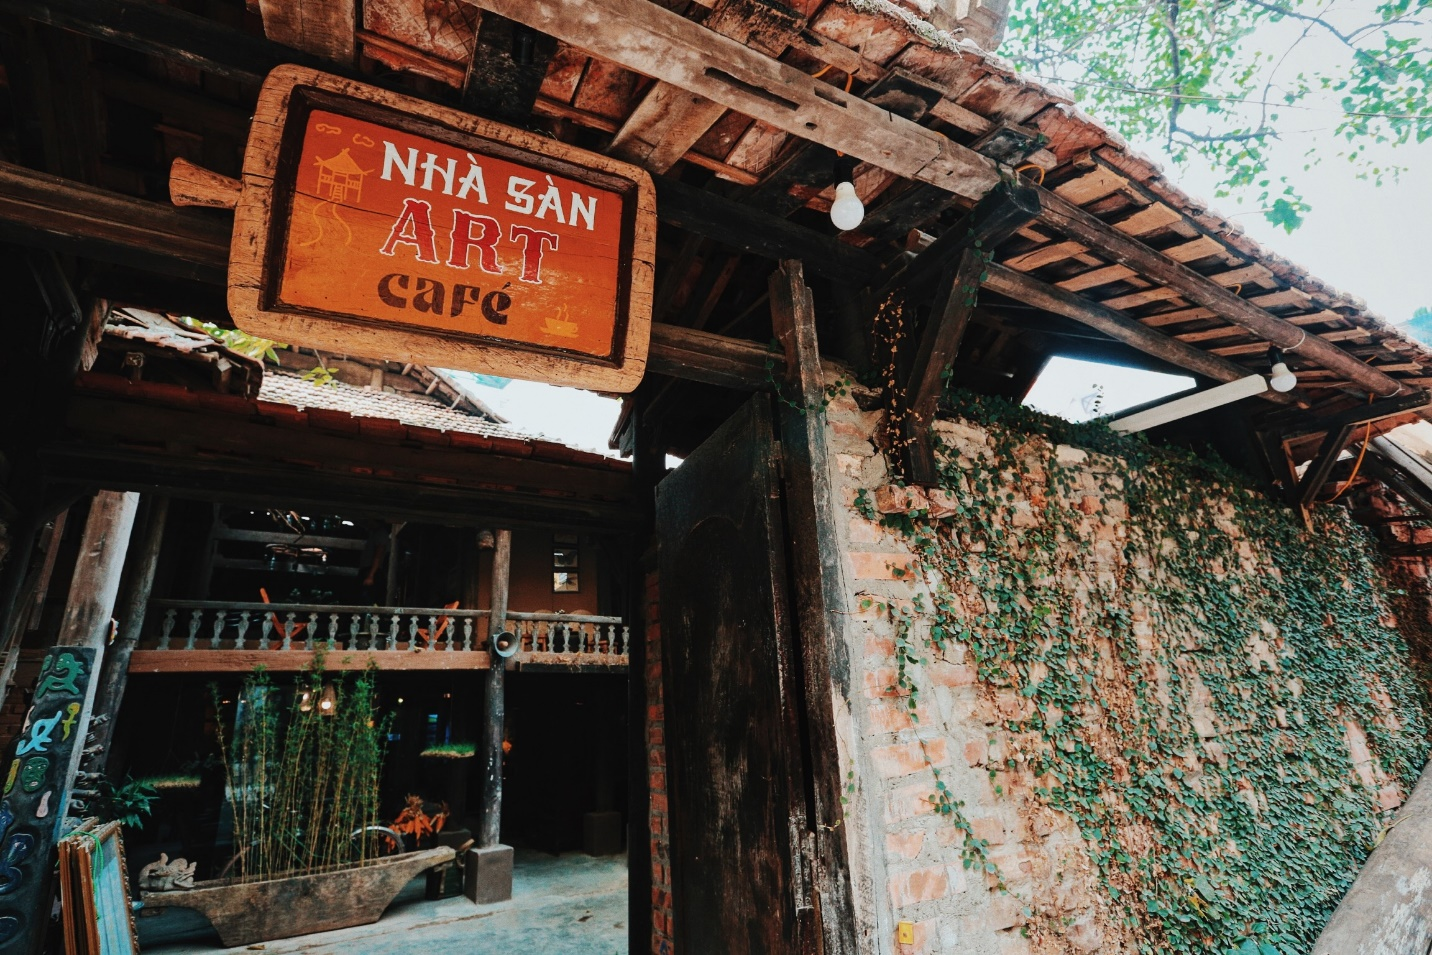 The gate of Nha San Cafe will impress you so much